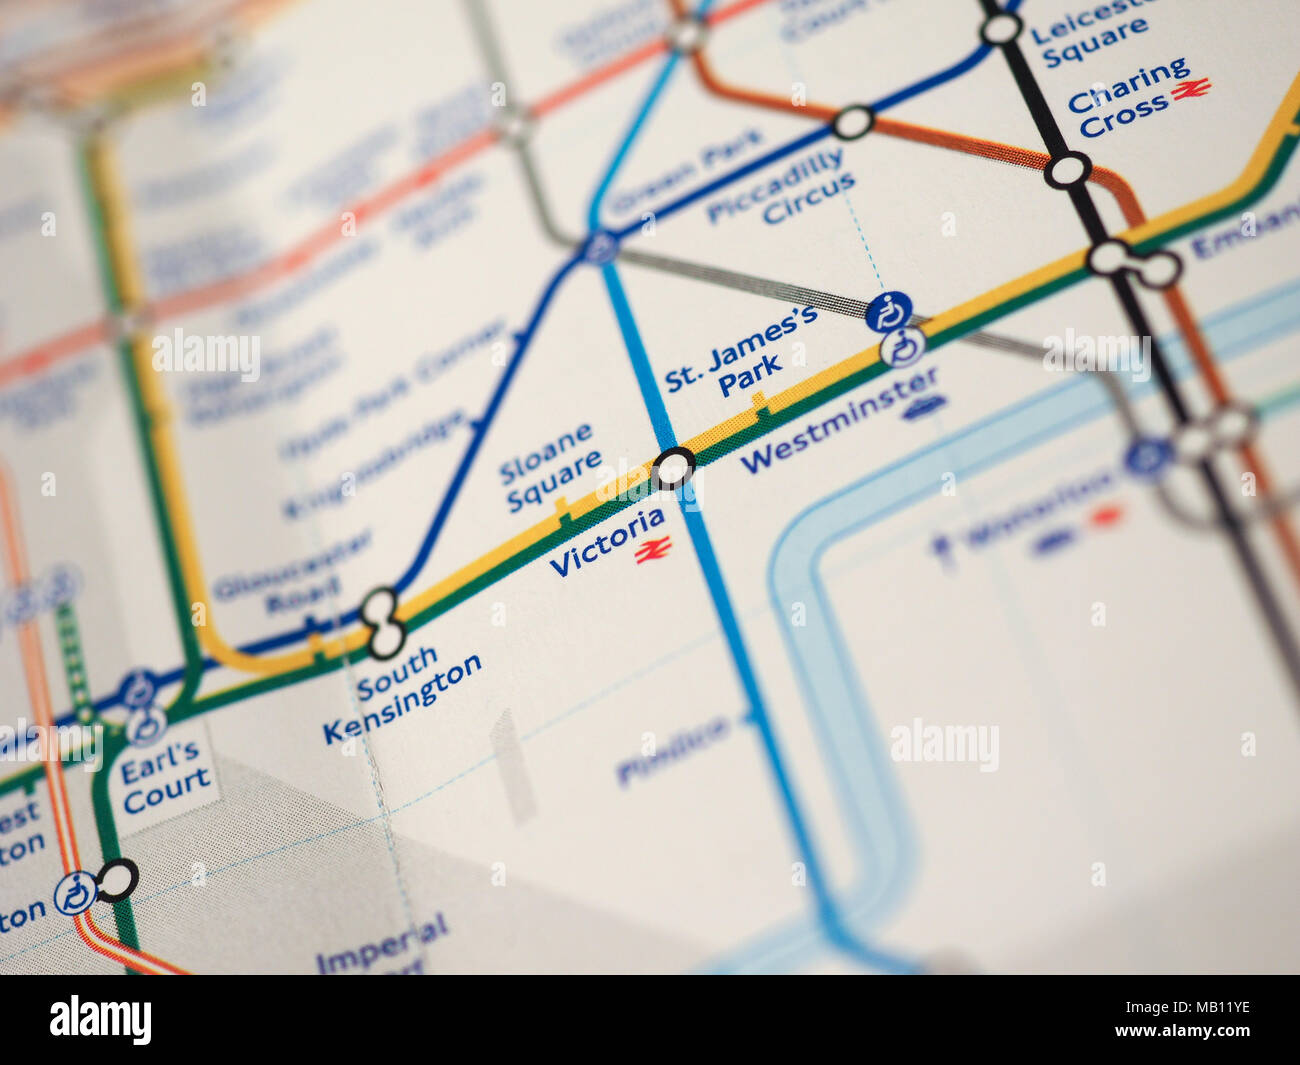 london uk circa 2018 map of london underground tube stations with selective focus on victoria station